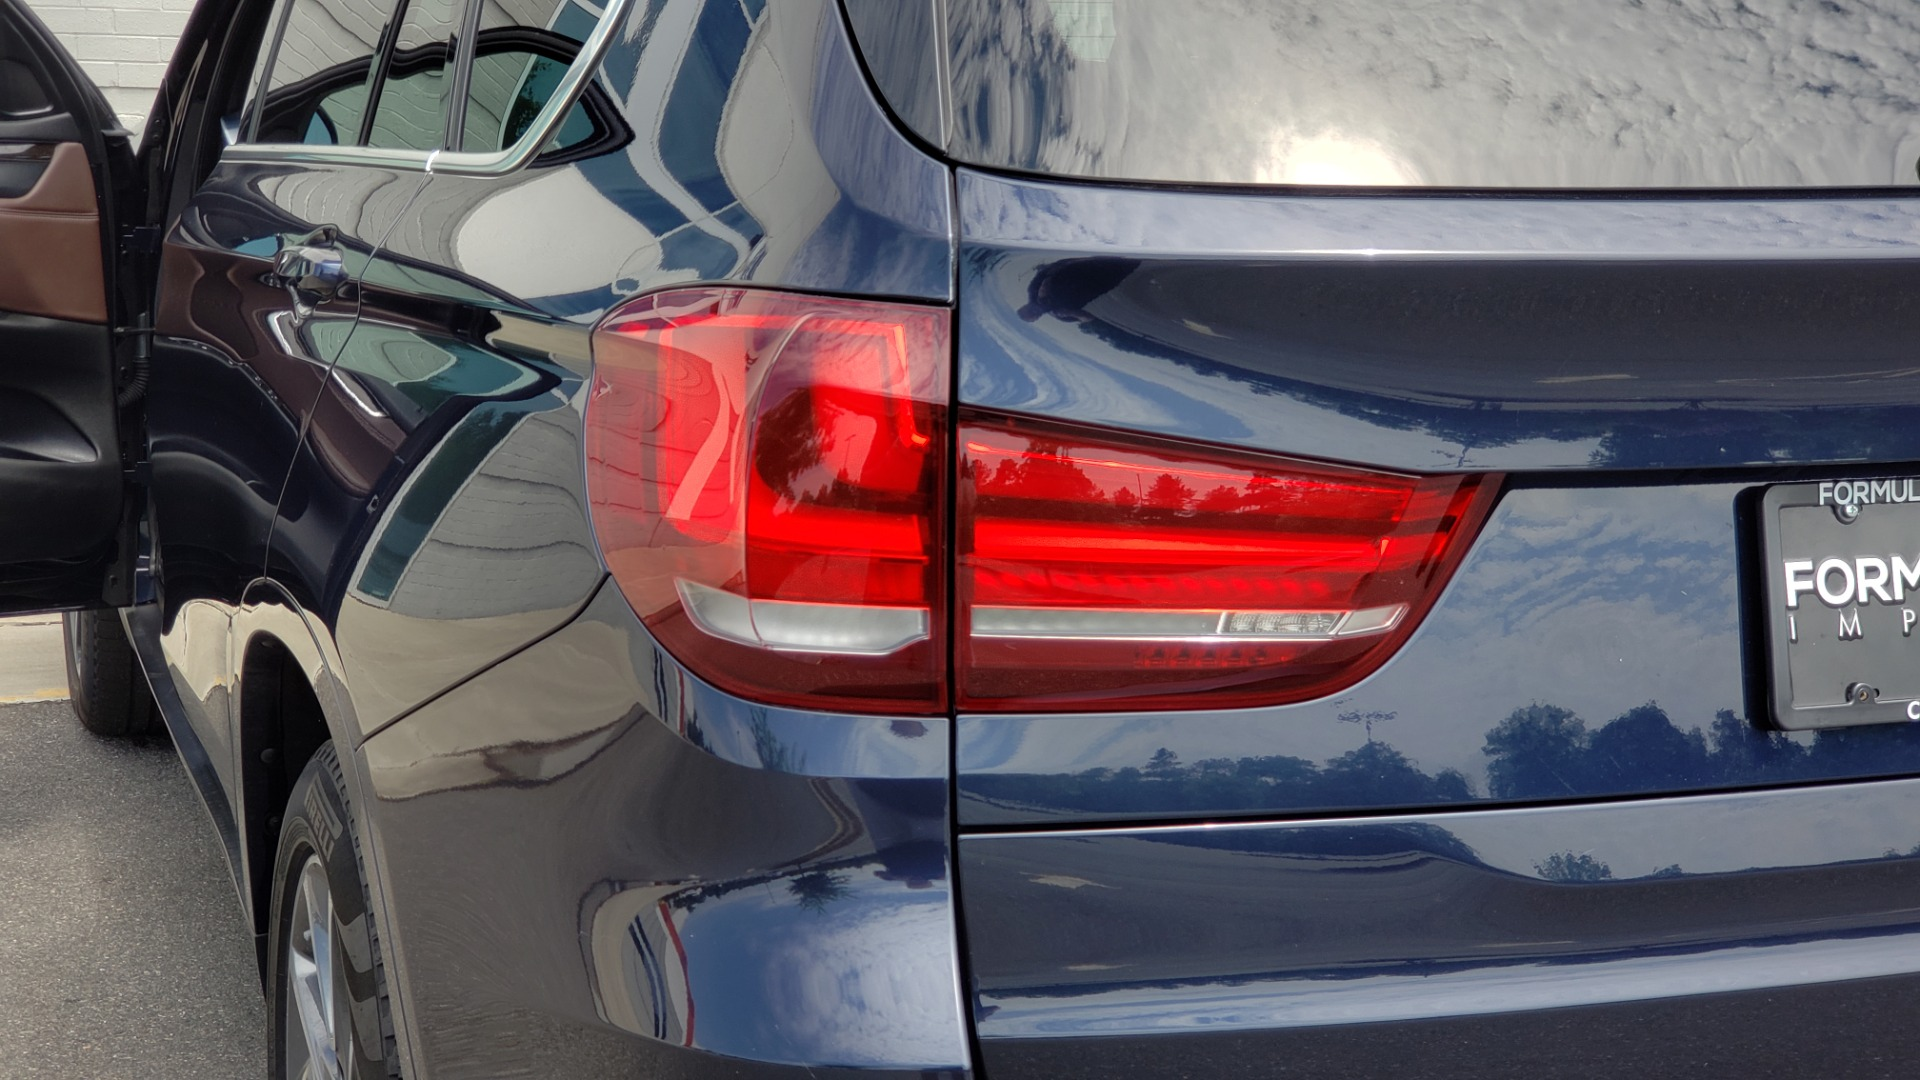 Used 2018 BMW X5 XDRIVE35I PREMIUM / LUXURY / DRVR ASST / HUD / LANE WARNING / REARVIEW for sale $43,695 at Formula Imports in Charlotte NC 28227 34